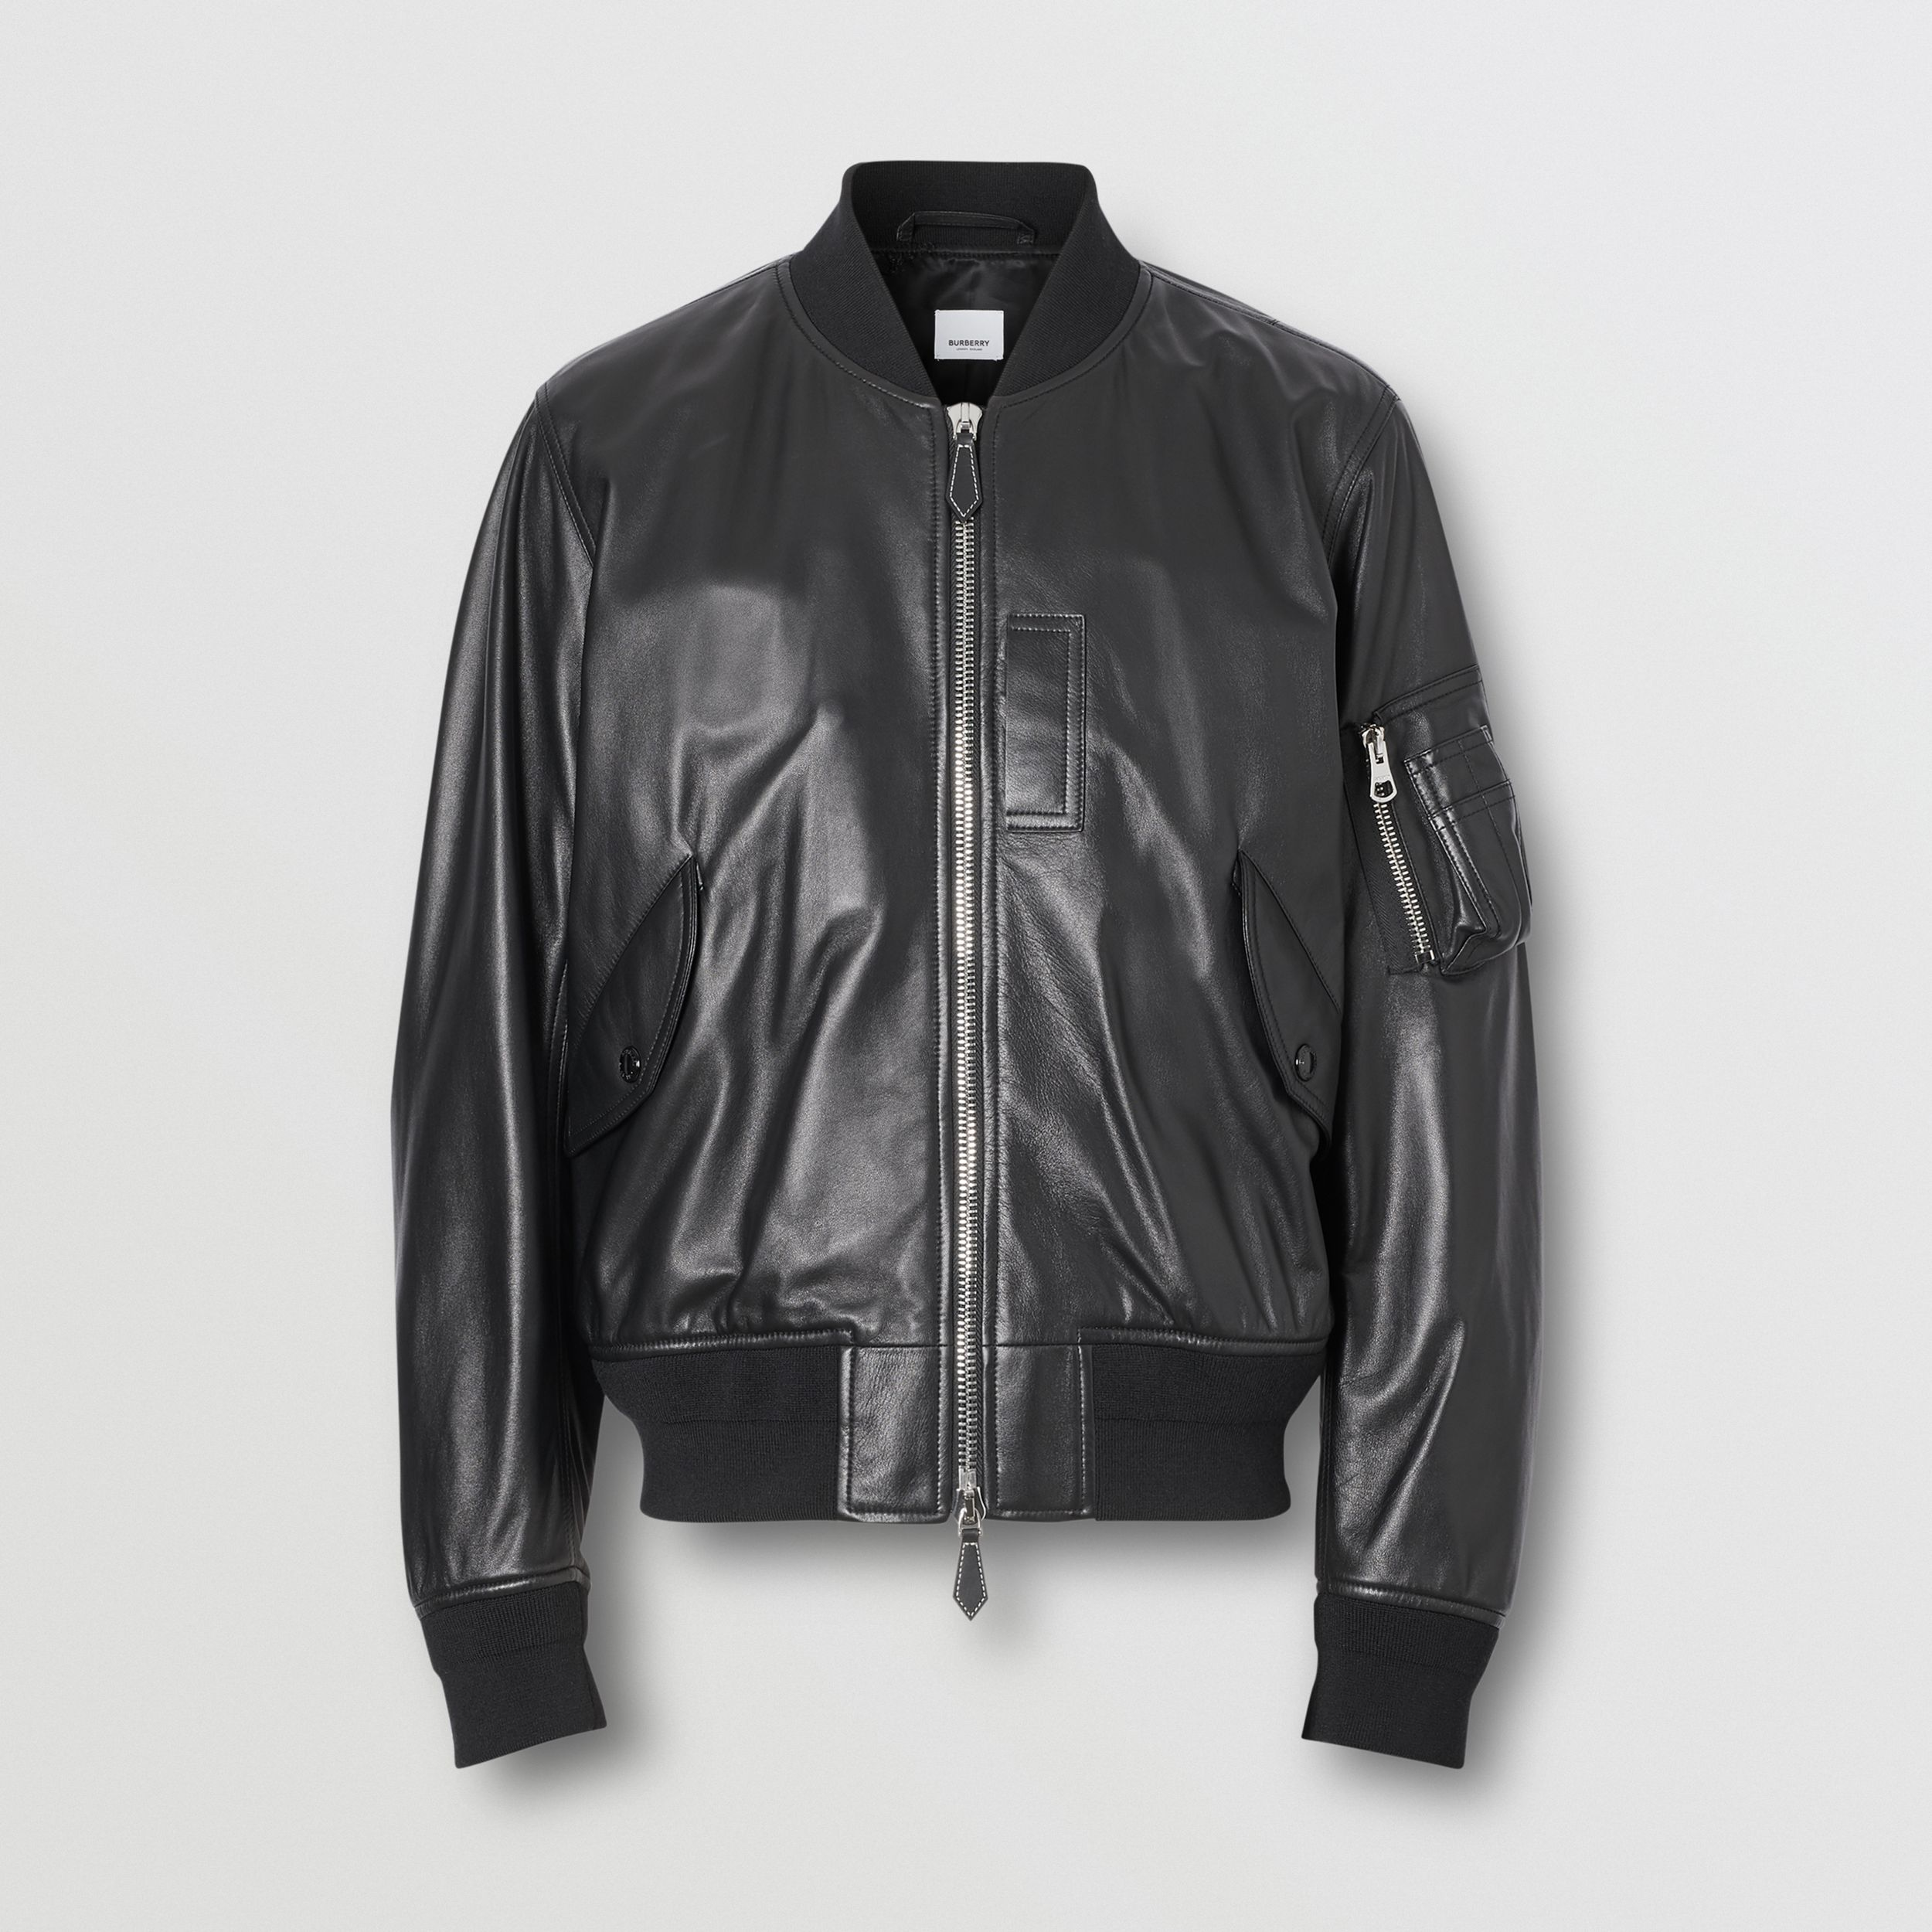 Lambskin Bomber Jacket in Black - Men | Burberry - 4